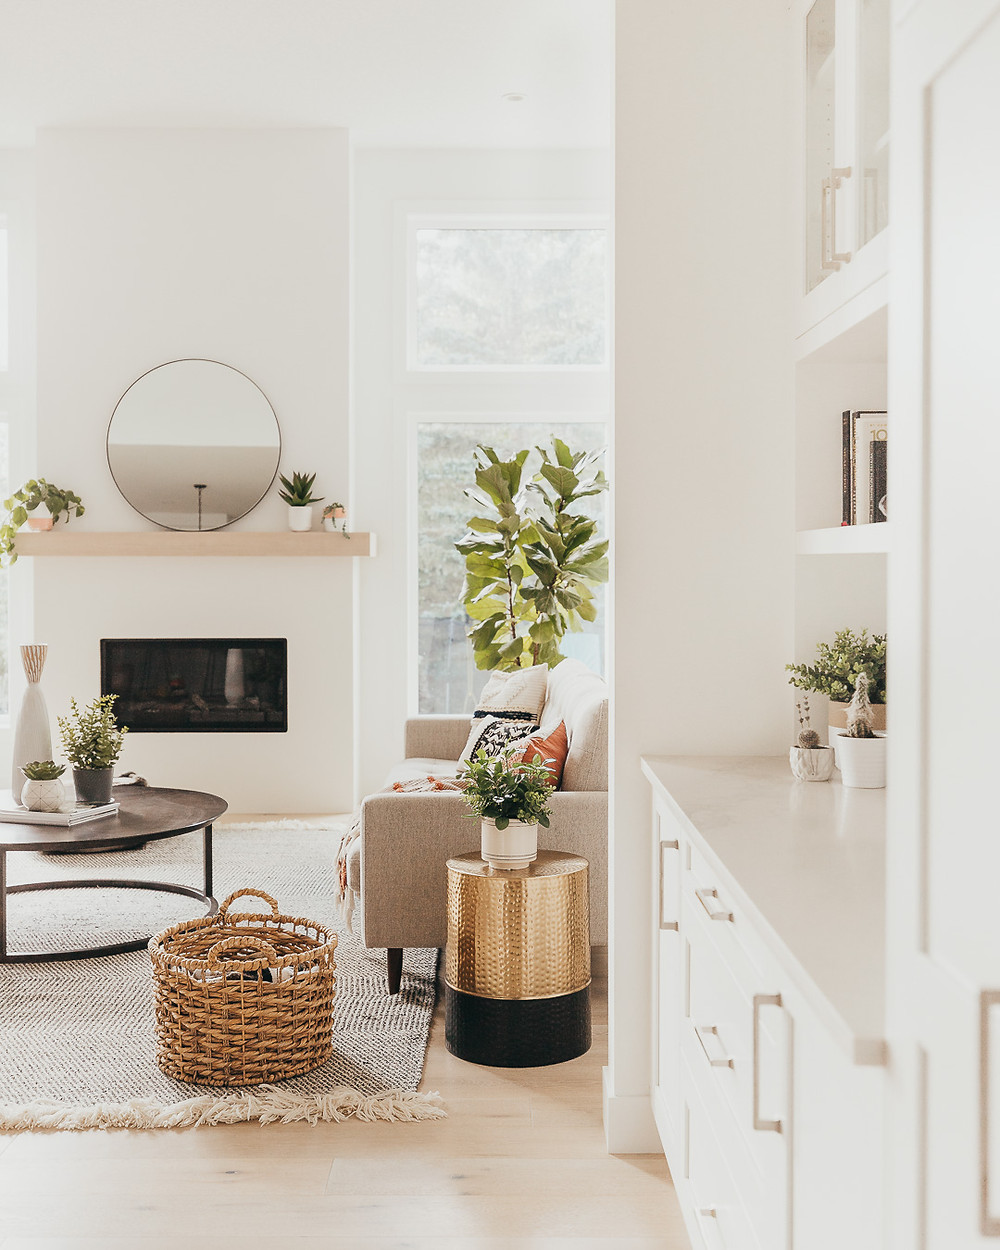 A white Scandinavian living room features natural white oak wood floors with a natural fibre striped wool rug, metal round coffee table, a fiddle leaf fig plant, wicker basket, a gold and black side table with a plant, and a linear fireplace with a natural wood mantel holding a round mirror and some plants.